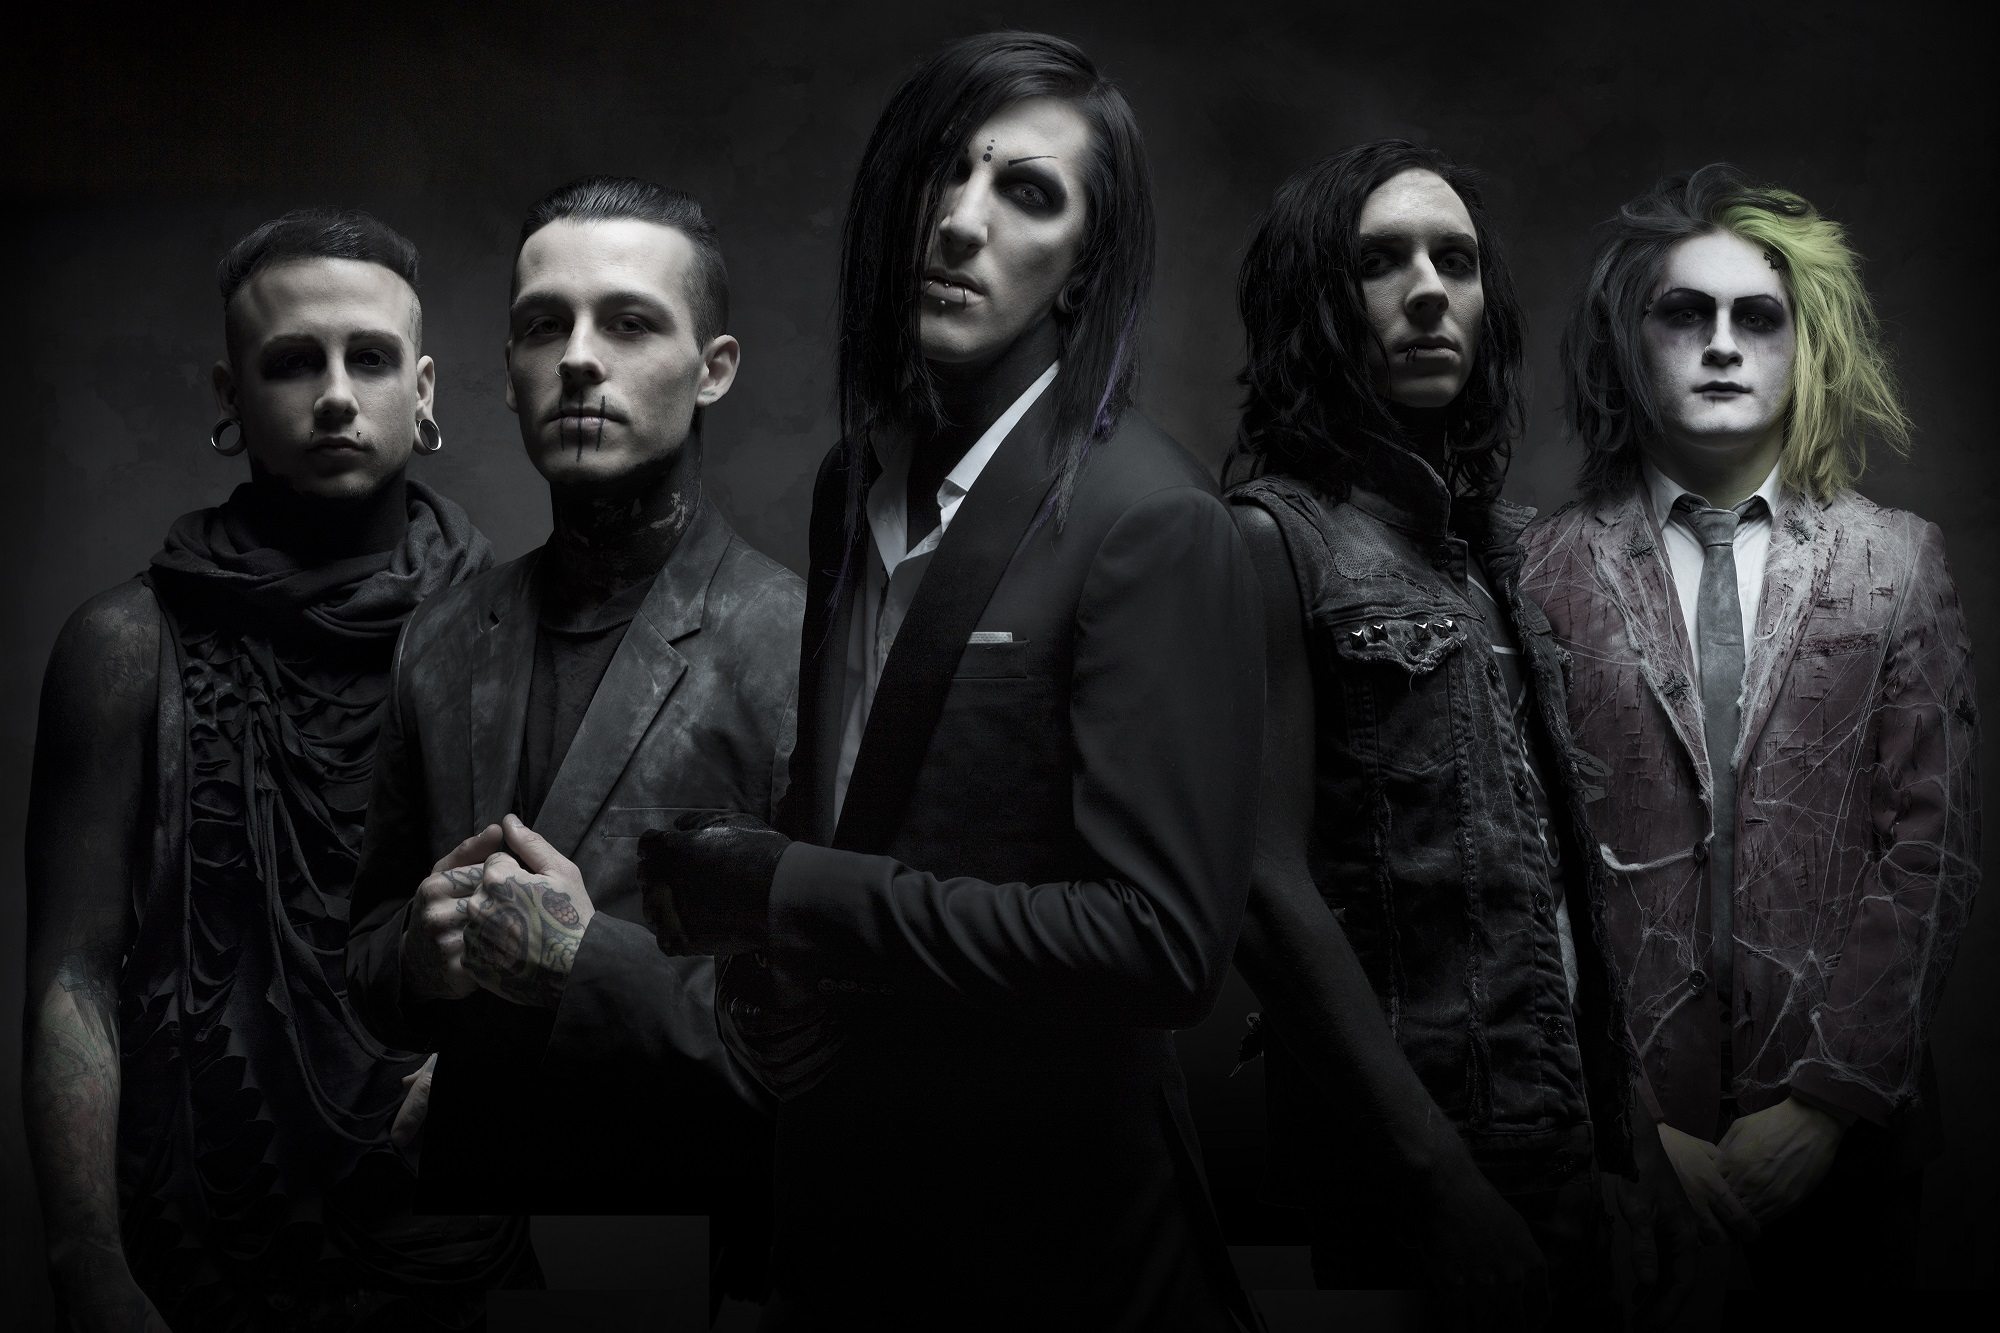 VIDEO: Motionless In White introduce The Misfits at AP Music Awards